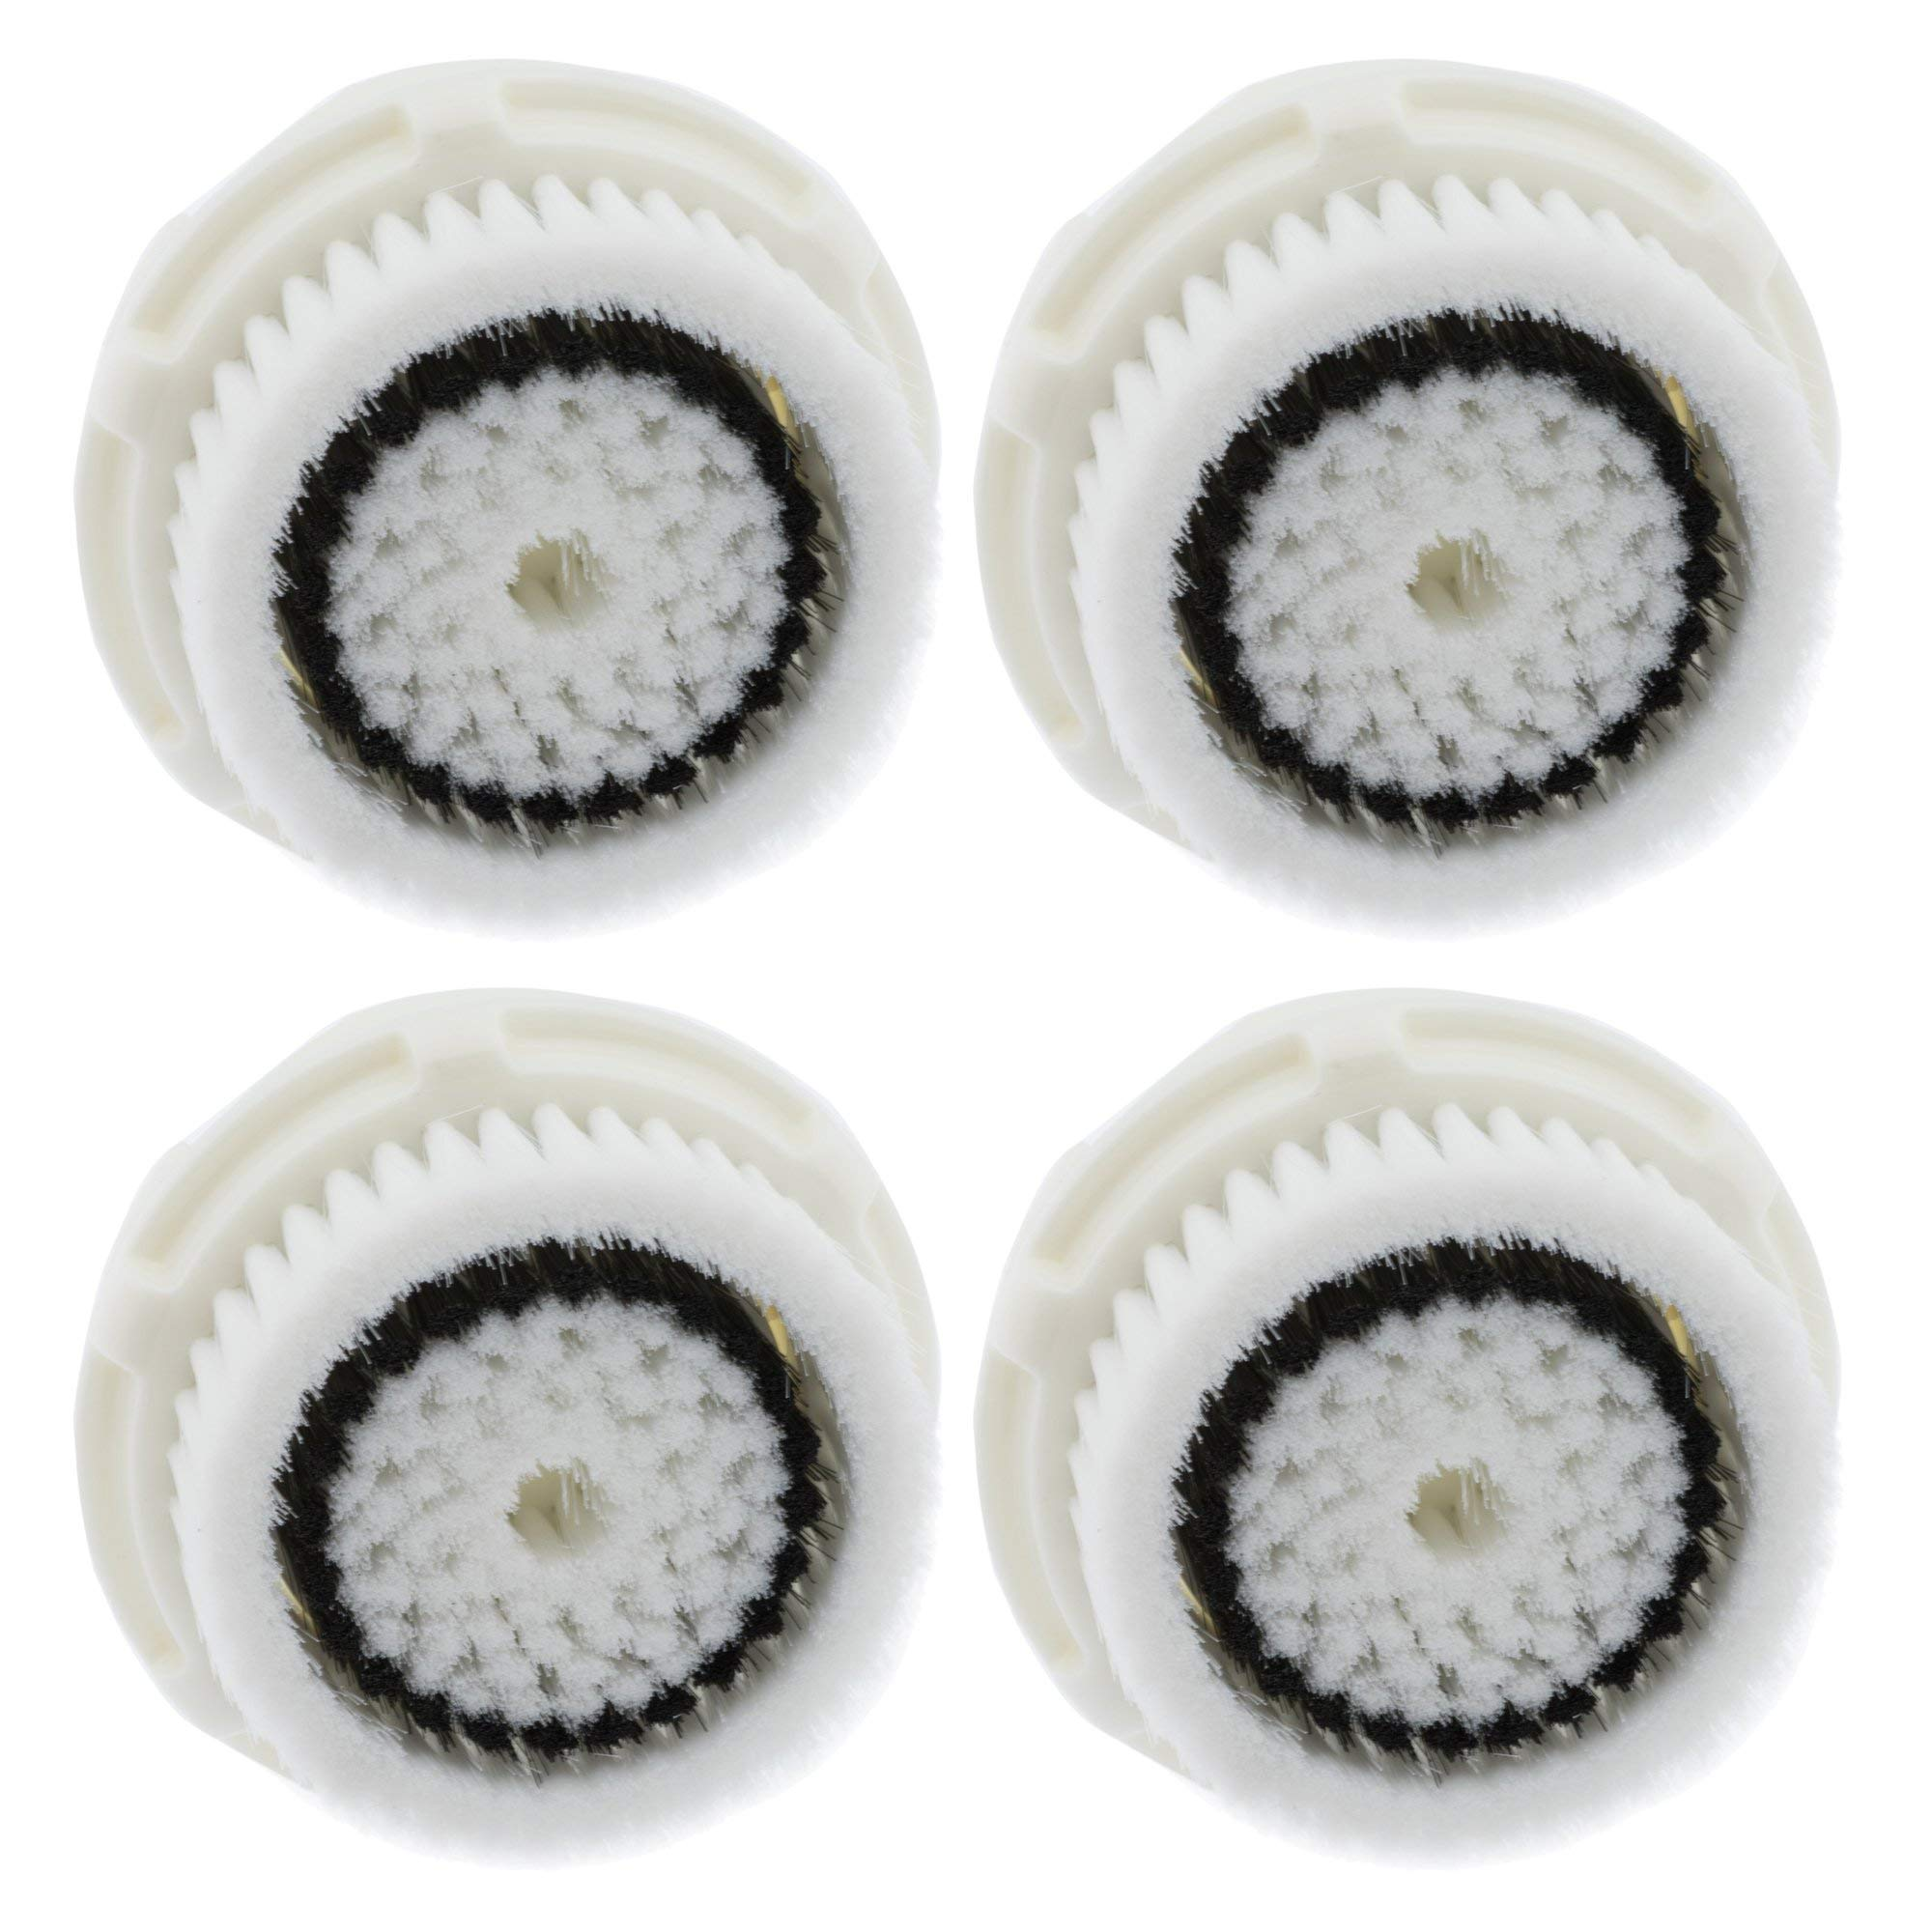 4 Pack Replacement Sensitive Brush Head,Compatible Facial Cleaning Brush Heads for Mia Mia2 Mia3 Aria Mia Fit Smart Profile and Alpha Fit